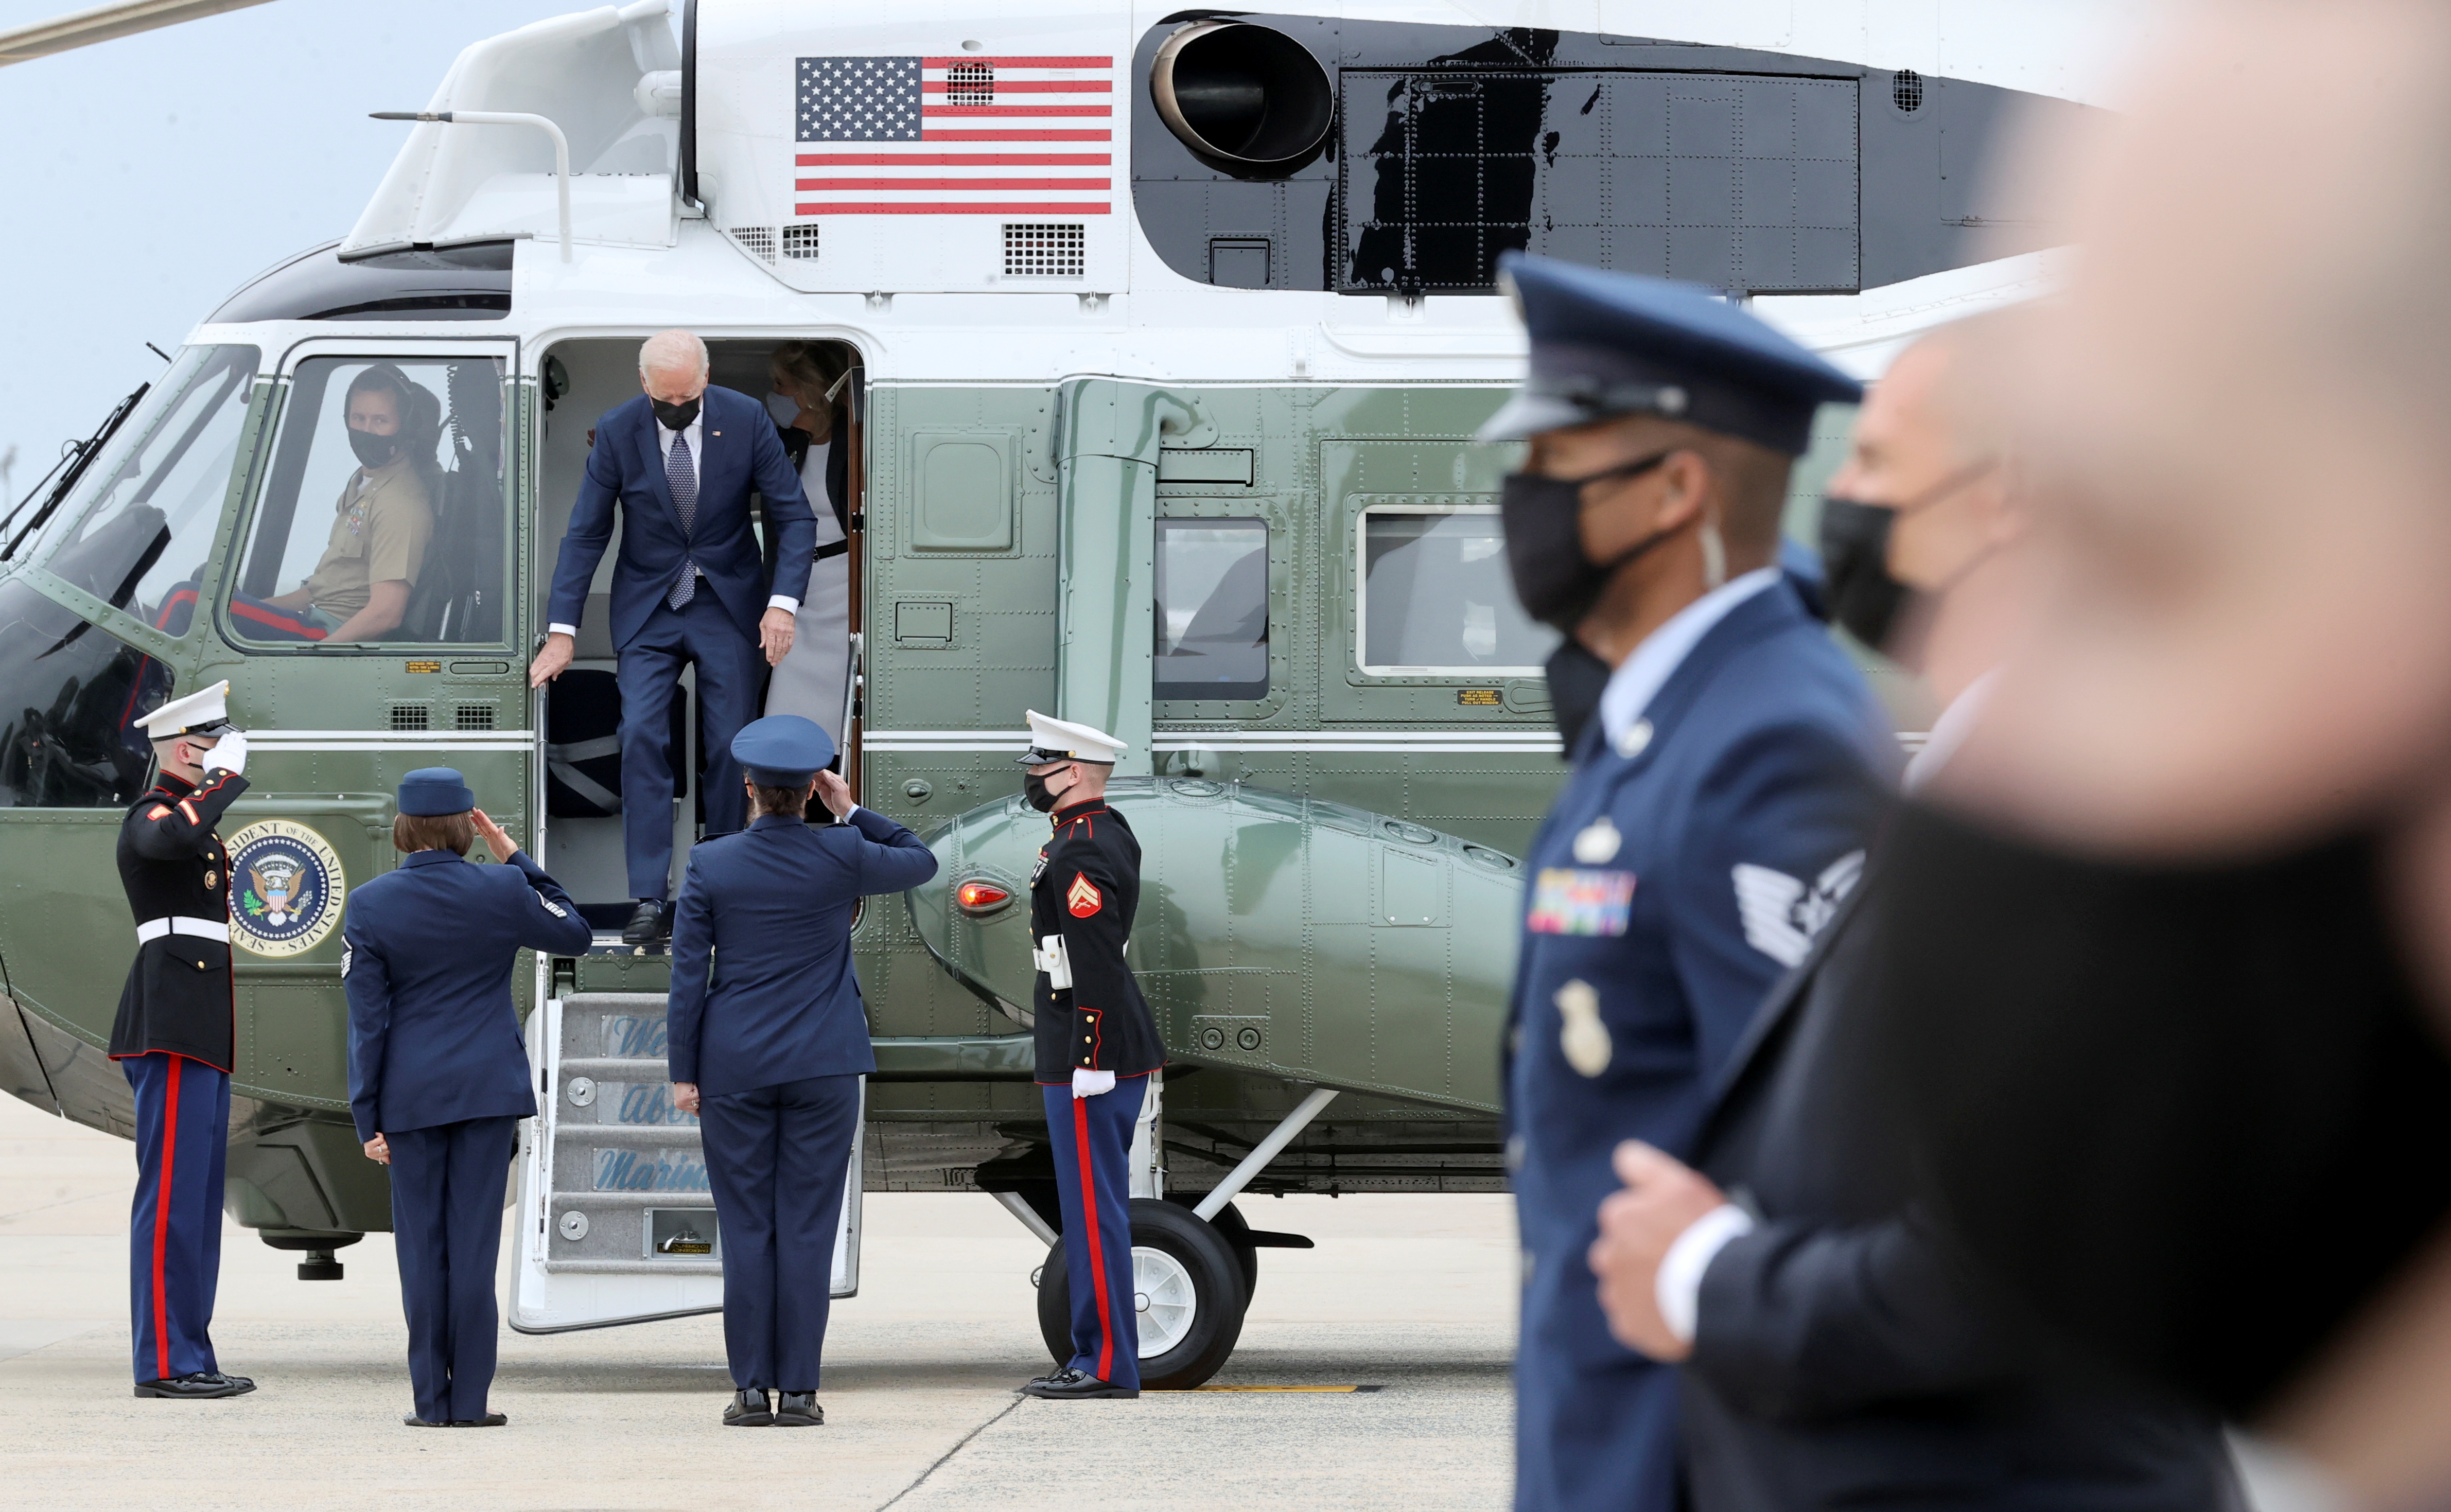 U.S. President Joe Biden and First Lady Jill Biden leave Marine One helicopter to board Air Force One for travel to Virginia from Joint Base Andrews, Maryland, U.S. May 3, 2021.  REUTERS/Jonathan Ernst